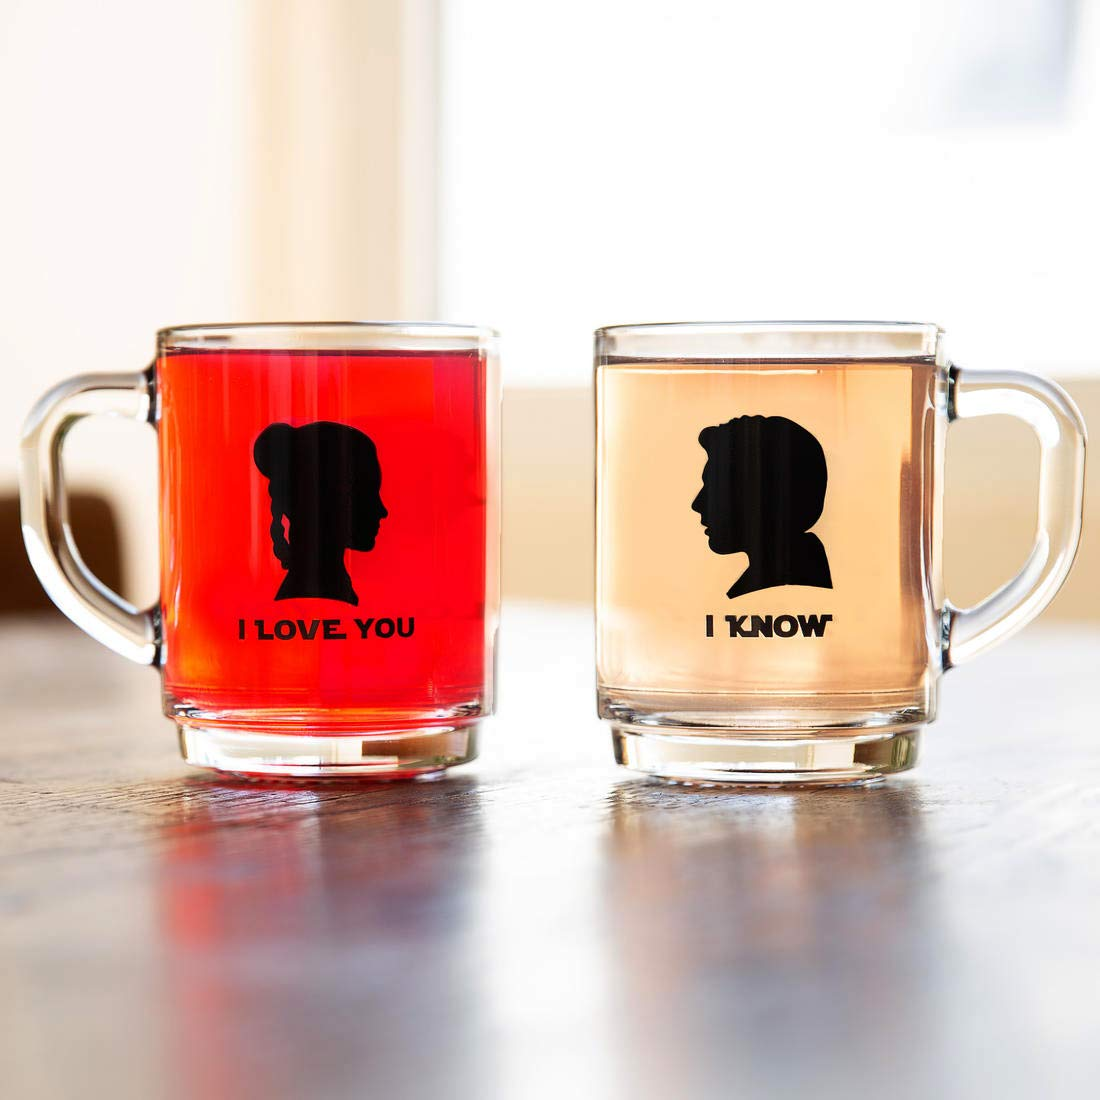 Silhouette Tea Glass Set Inspired by Star Wars Movies Two Cups with Black Print Portraits of Han Solo and Princess Leia Organa I Know getDigital I Love You